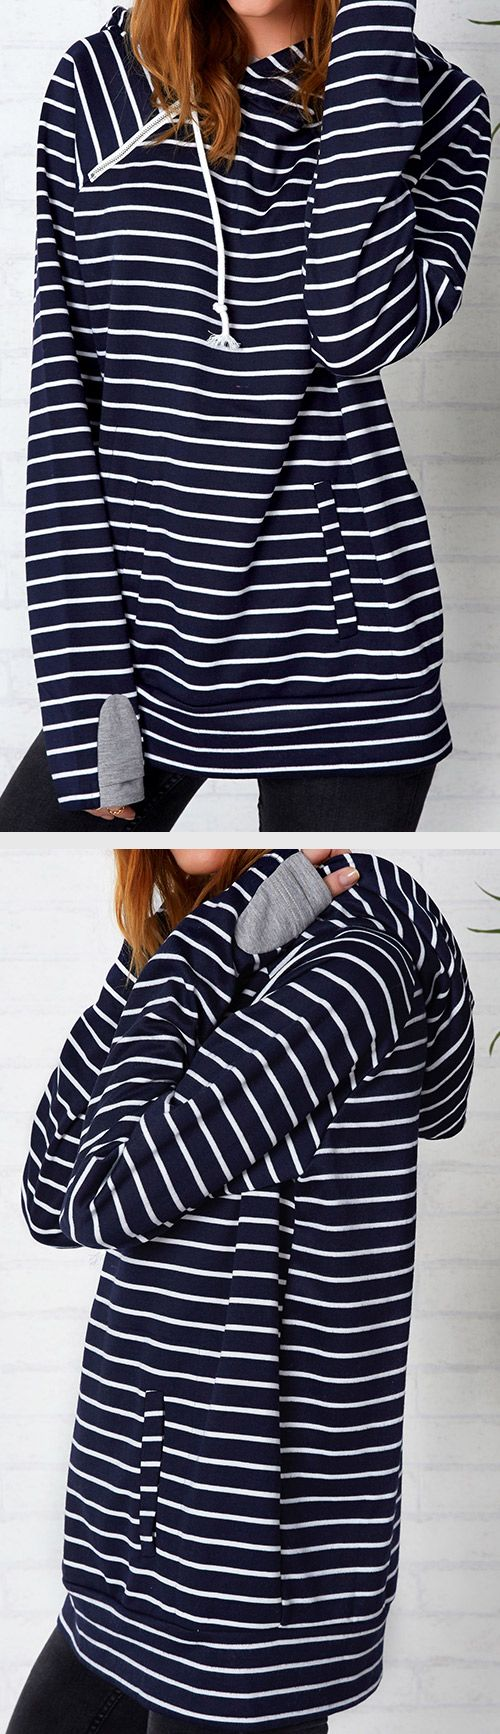 Free shipping+easy return! This casually cute top is perfect for the fall transition. Can Not Miss it, $34.99! It has double fabric hood & Irregular zipper at front. Plus, the fabric is super soft and comfy!